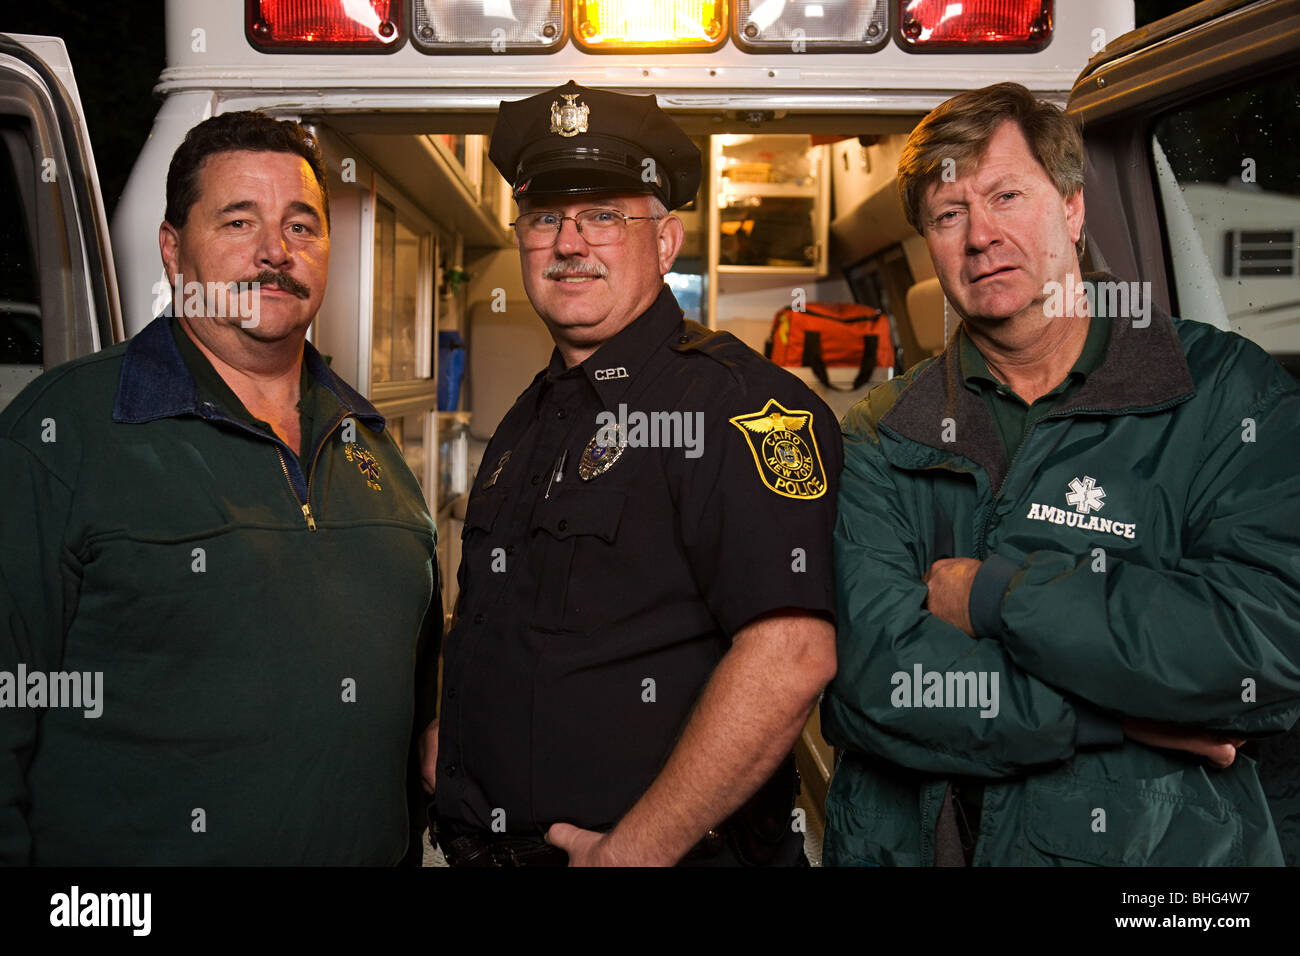 Policeman and emergency medical technicians - Stock Image